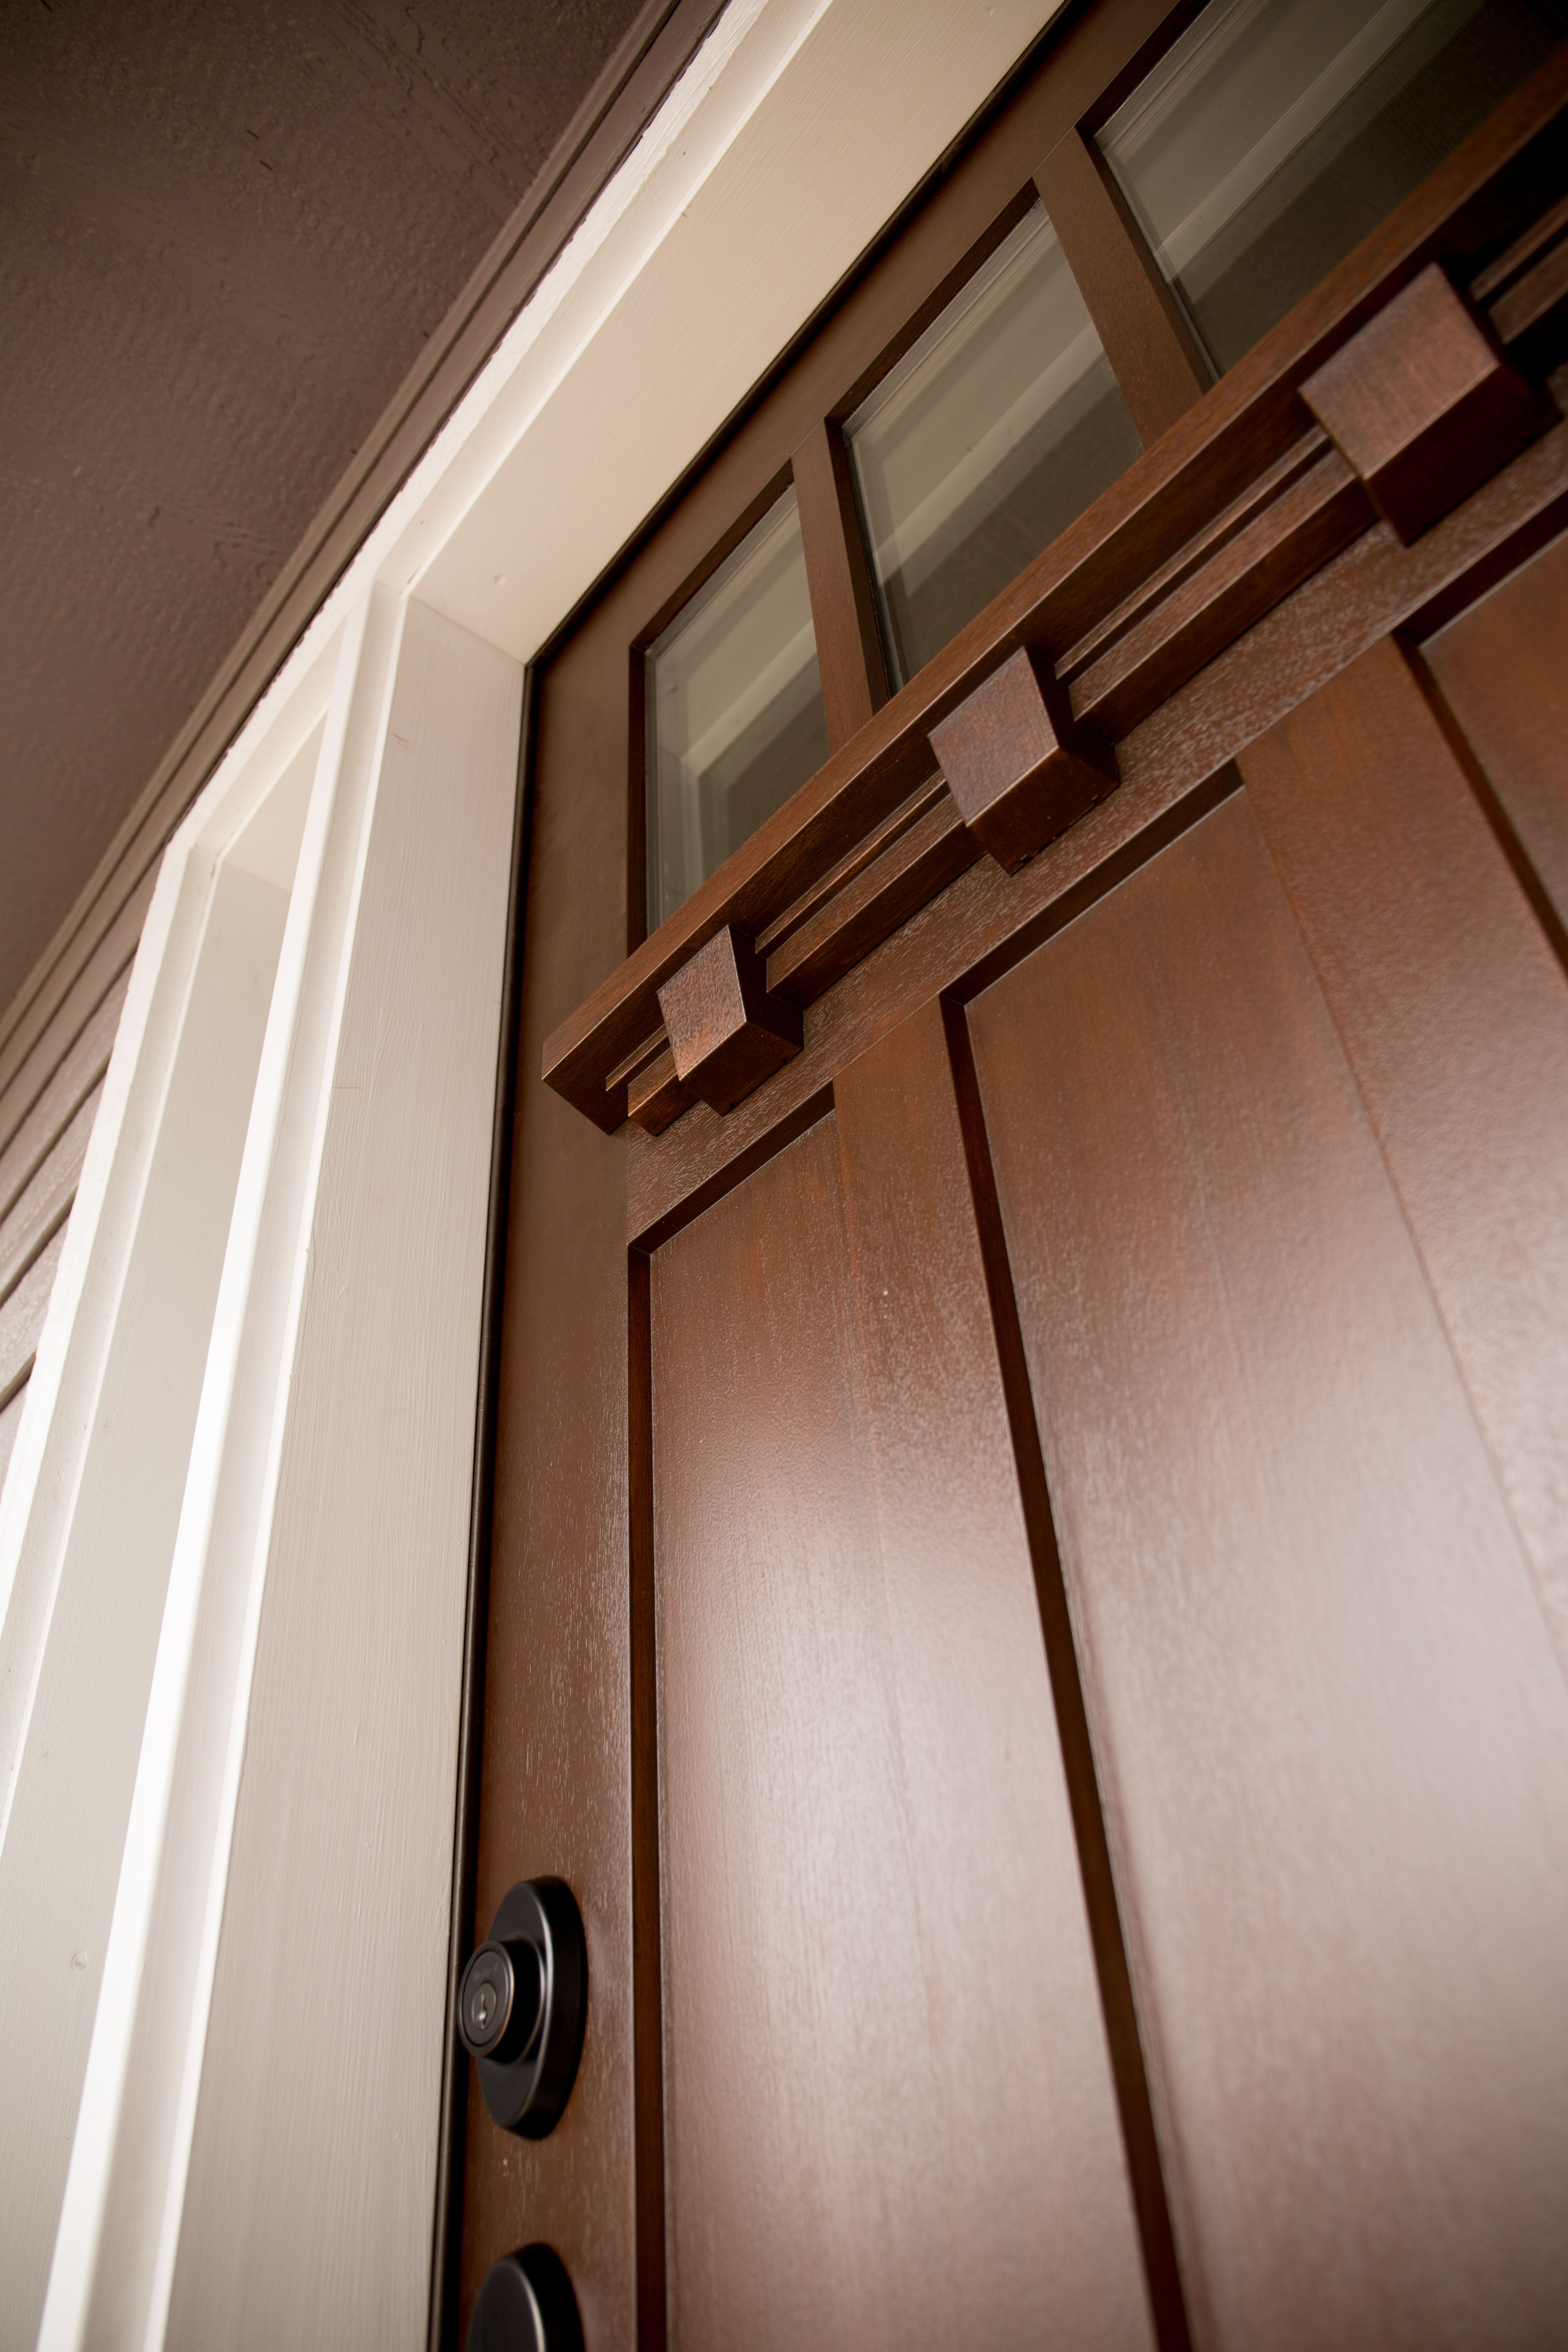 Fiberglass entry door systems wood doors - Exterior Door Acclimated Entry System Including Fir Fiberglass Door With Straight Sticking And Dentil Accessory